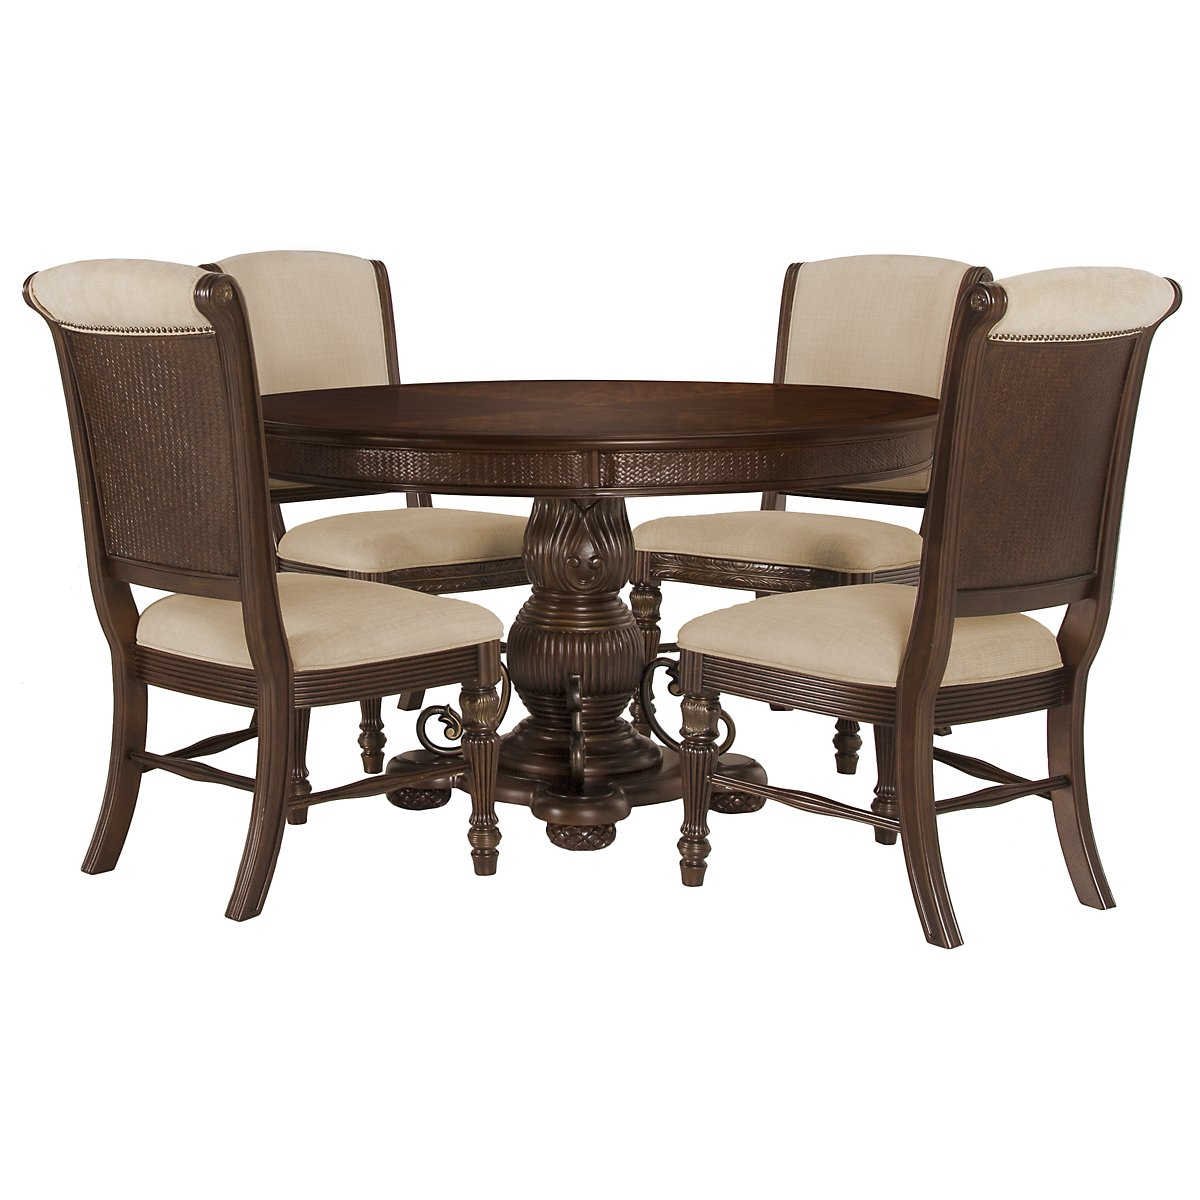 Tradewinds Dark Tone Wood Table & 4 Upholstered Chairs